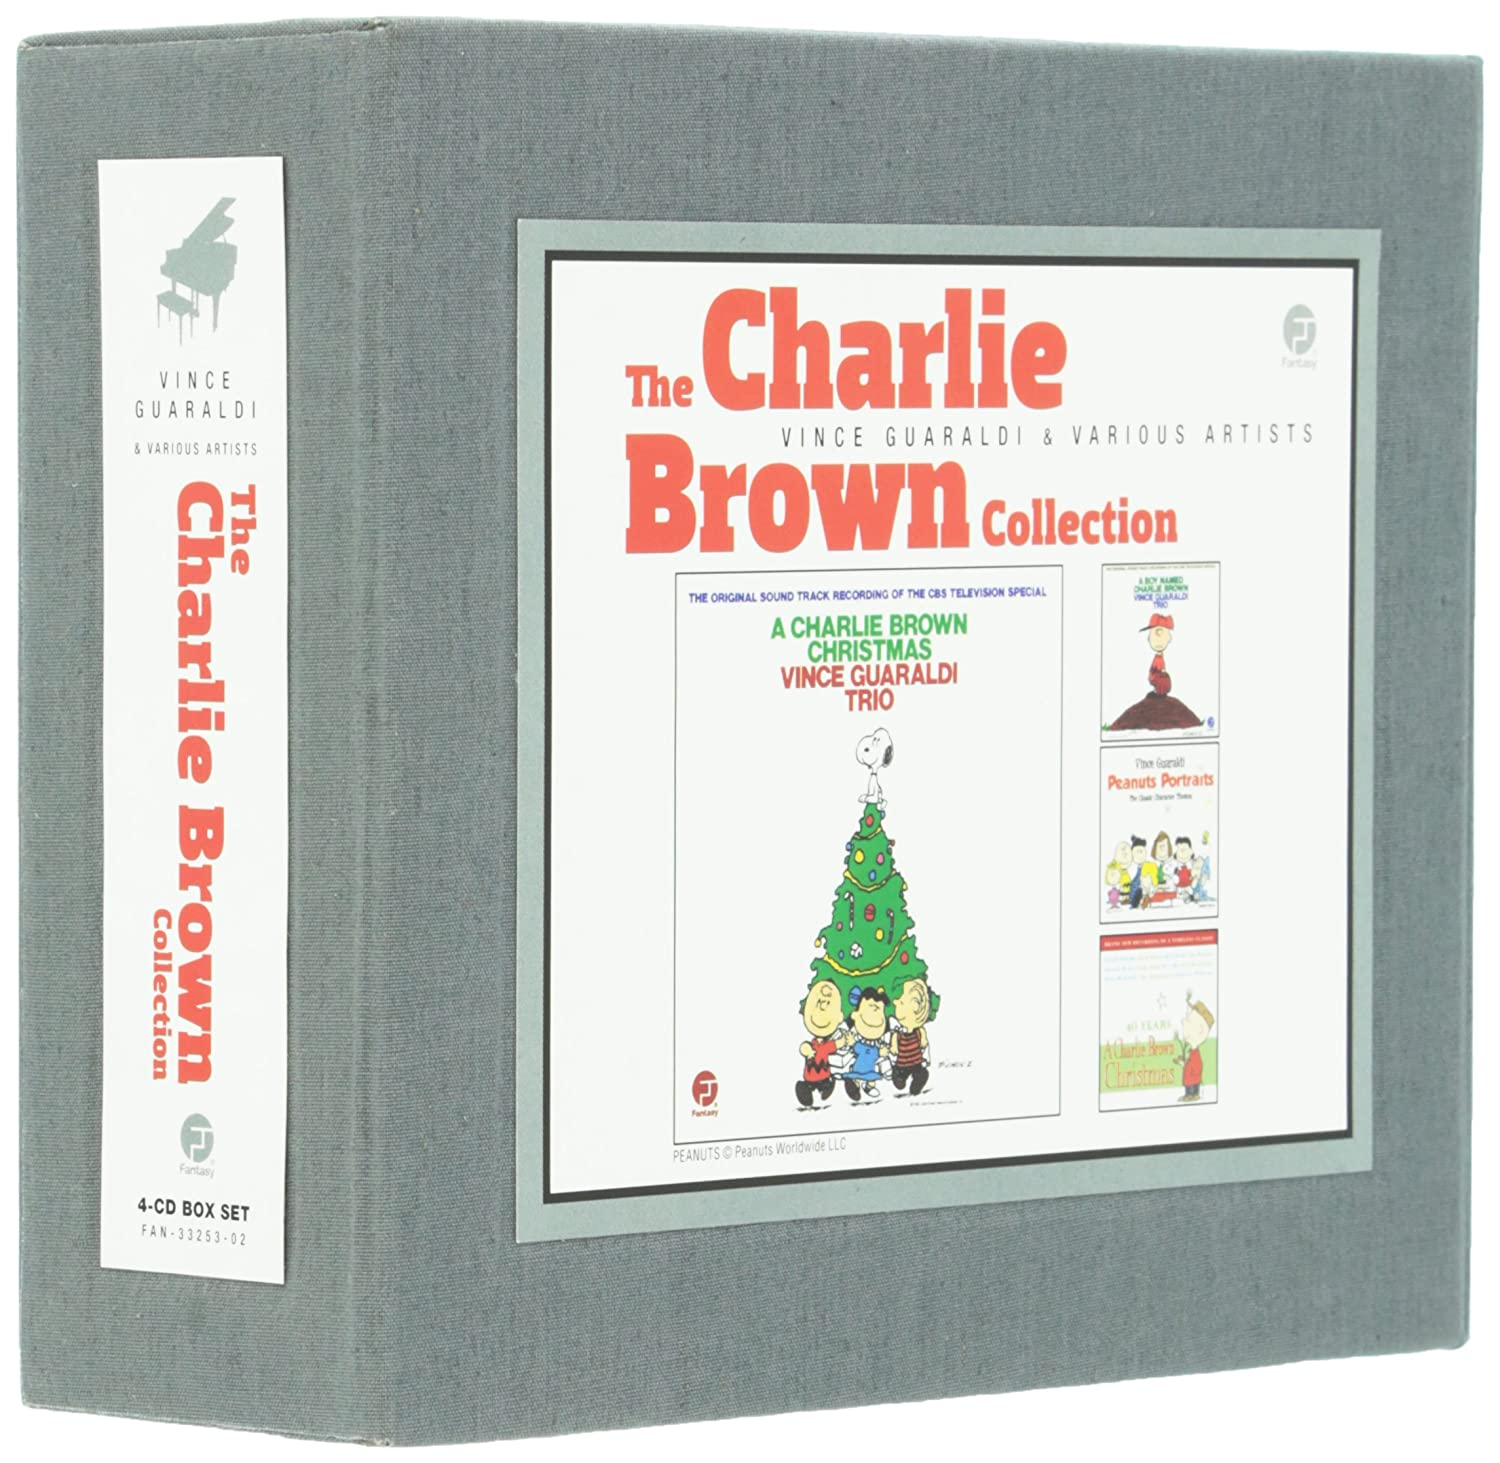 Vince Guaraldi - The Charlie Brown Collection [4 CD Box Set ...